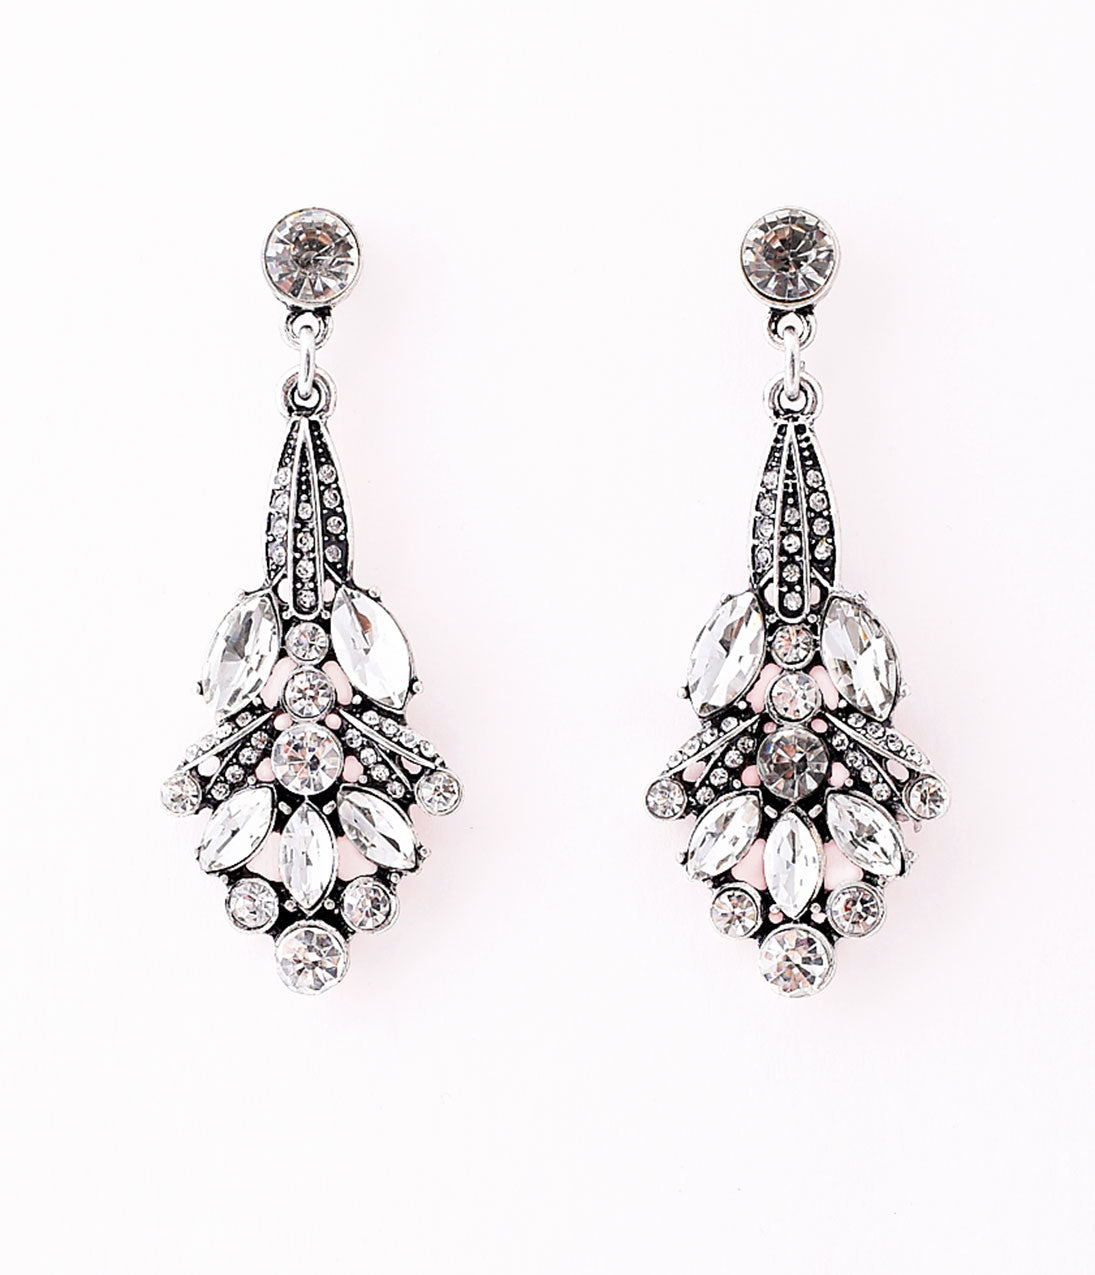 Vintage Style Jewelry, Retro Jewelry 1920S Style Silver Rhinestone Nouveau Flower Drop Earrings $34.00 AT vintagedancer.com